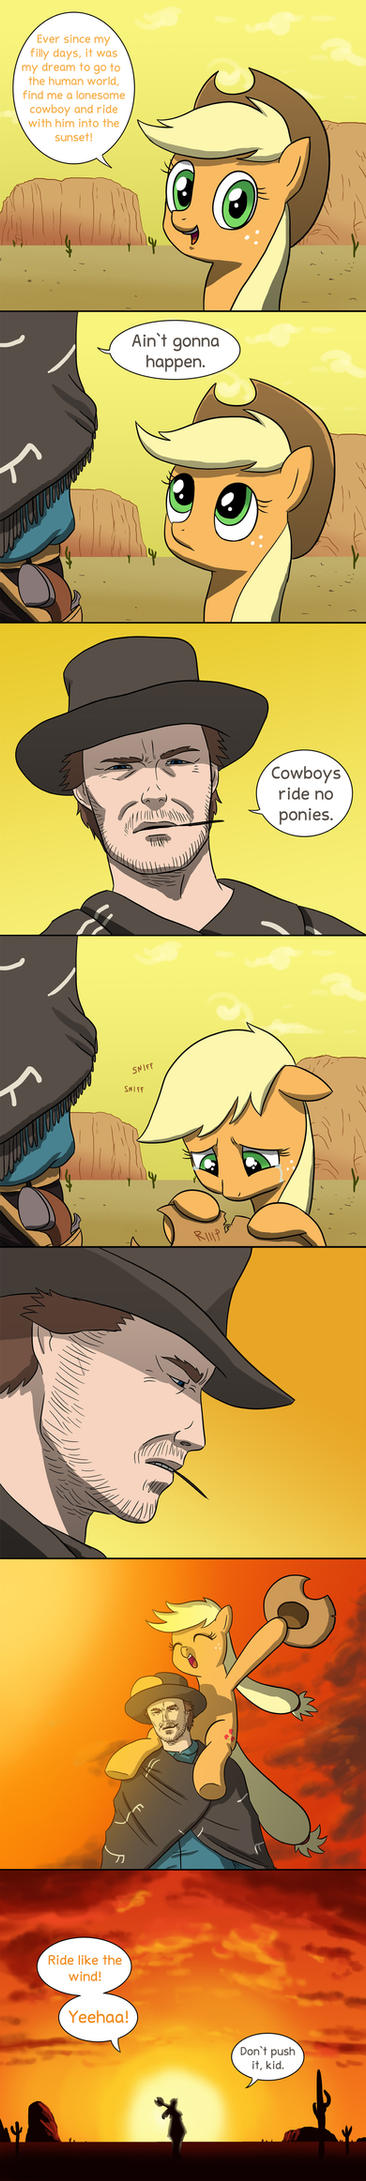 Applejack's dream by doubleWbrothers